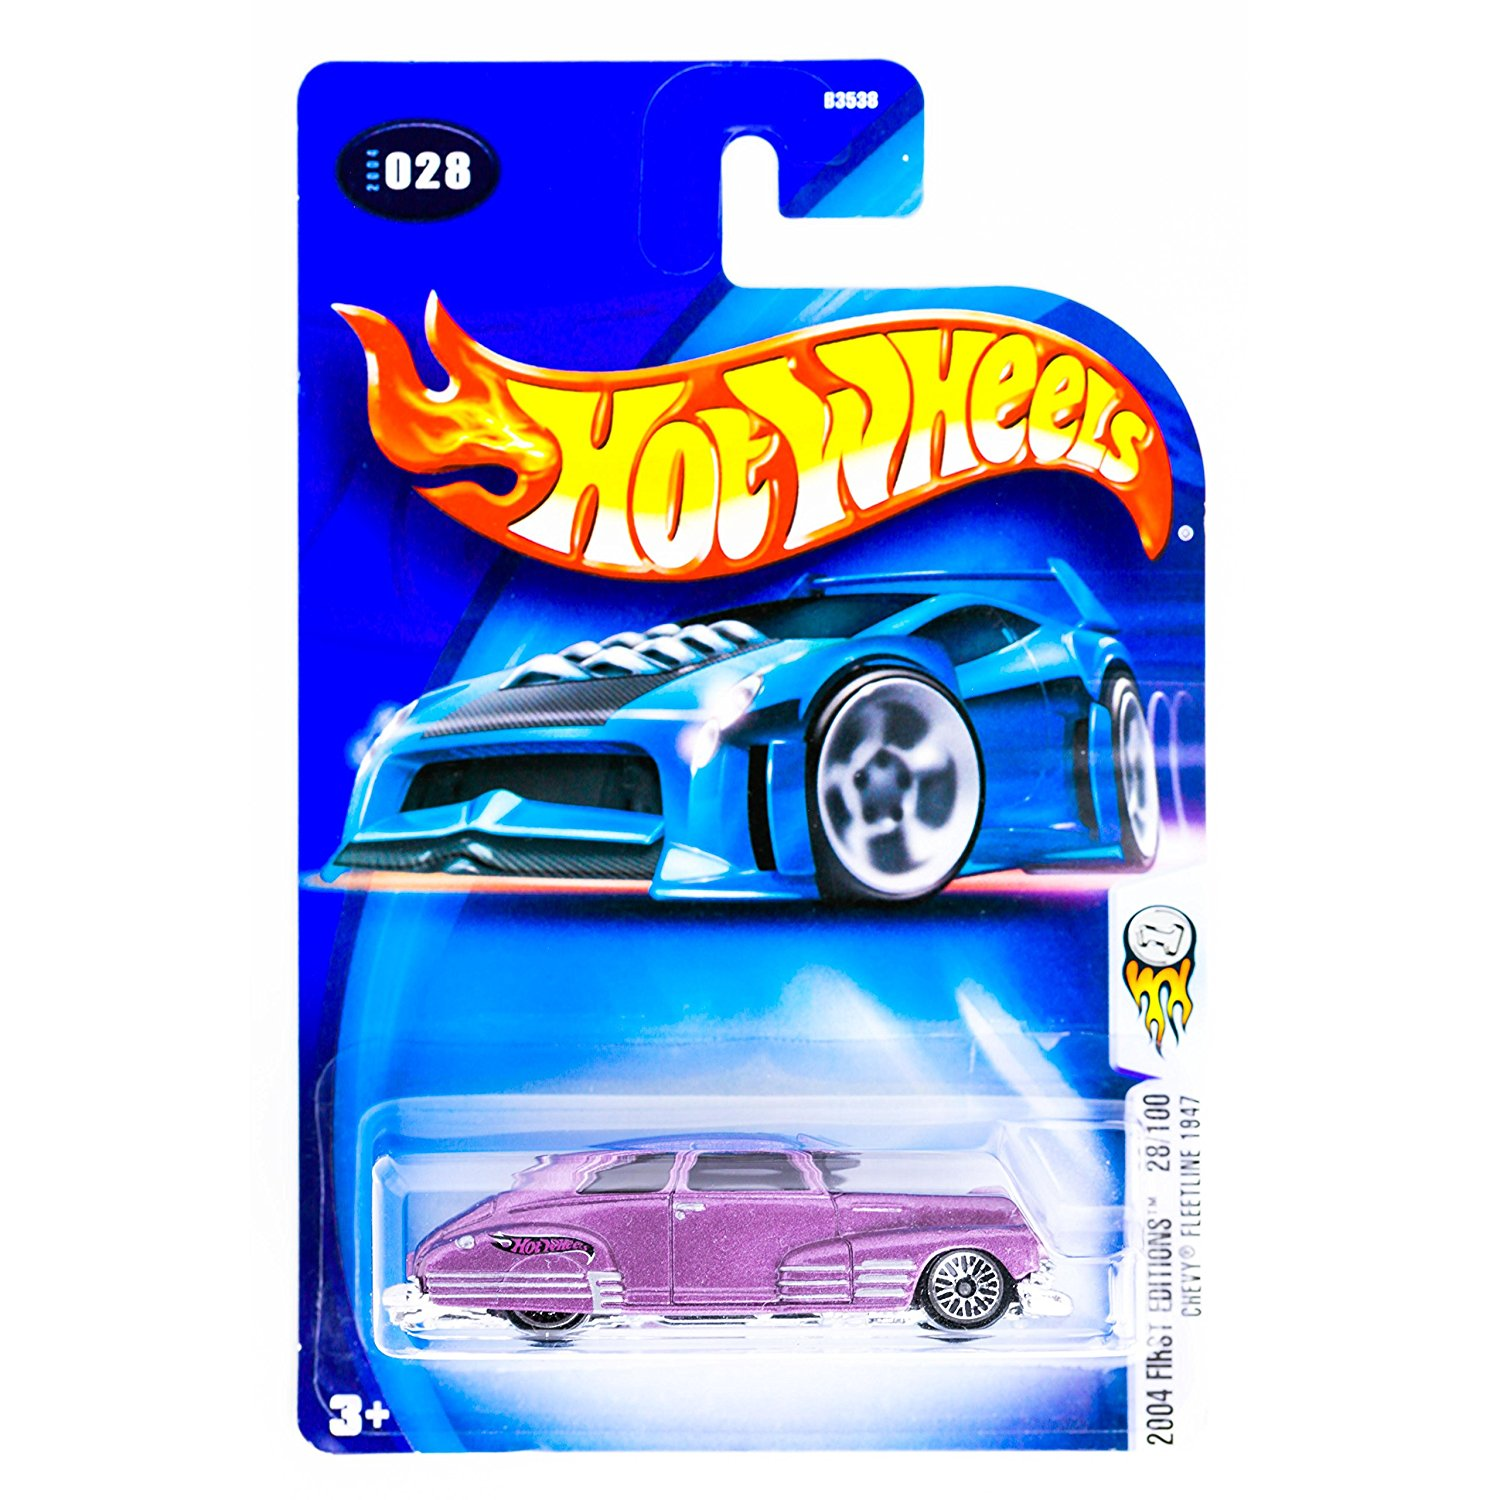 Mattel 2004 First Editions 1:64 Scale Purple 1947 Chevy Fleetline Die Cast Car #028 By Hot... by